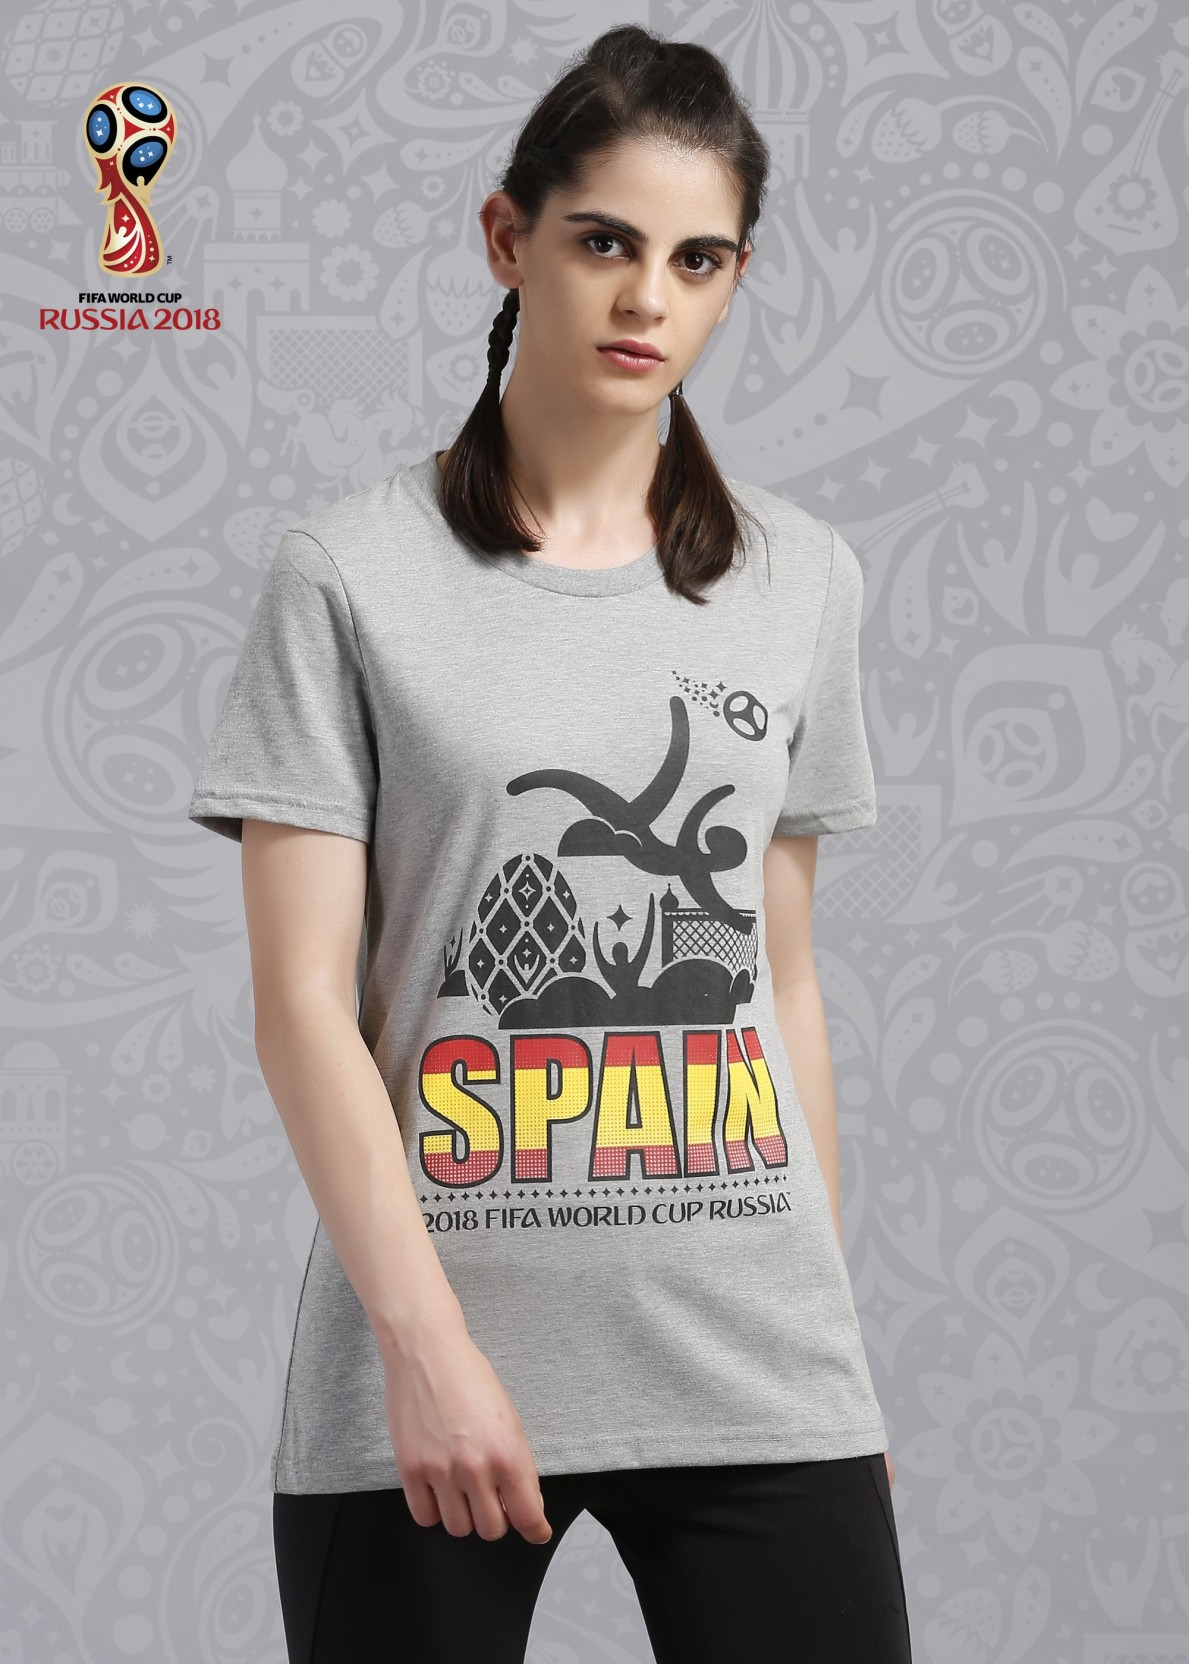 Fifa Spain Graphic Print Womens Round Neck Grey T Shirt Buy Light Fashion Big Size World Cup 3xl On Offer